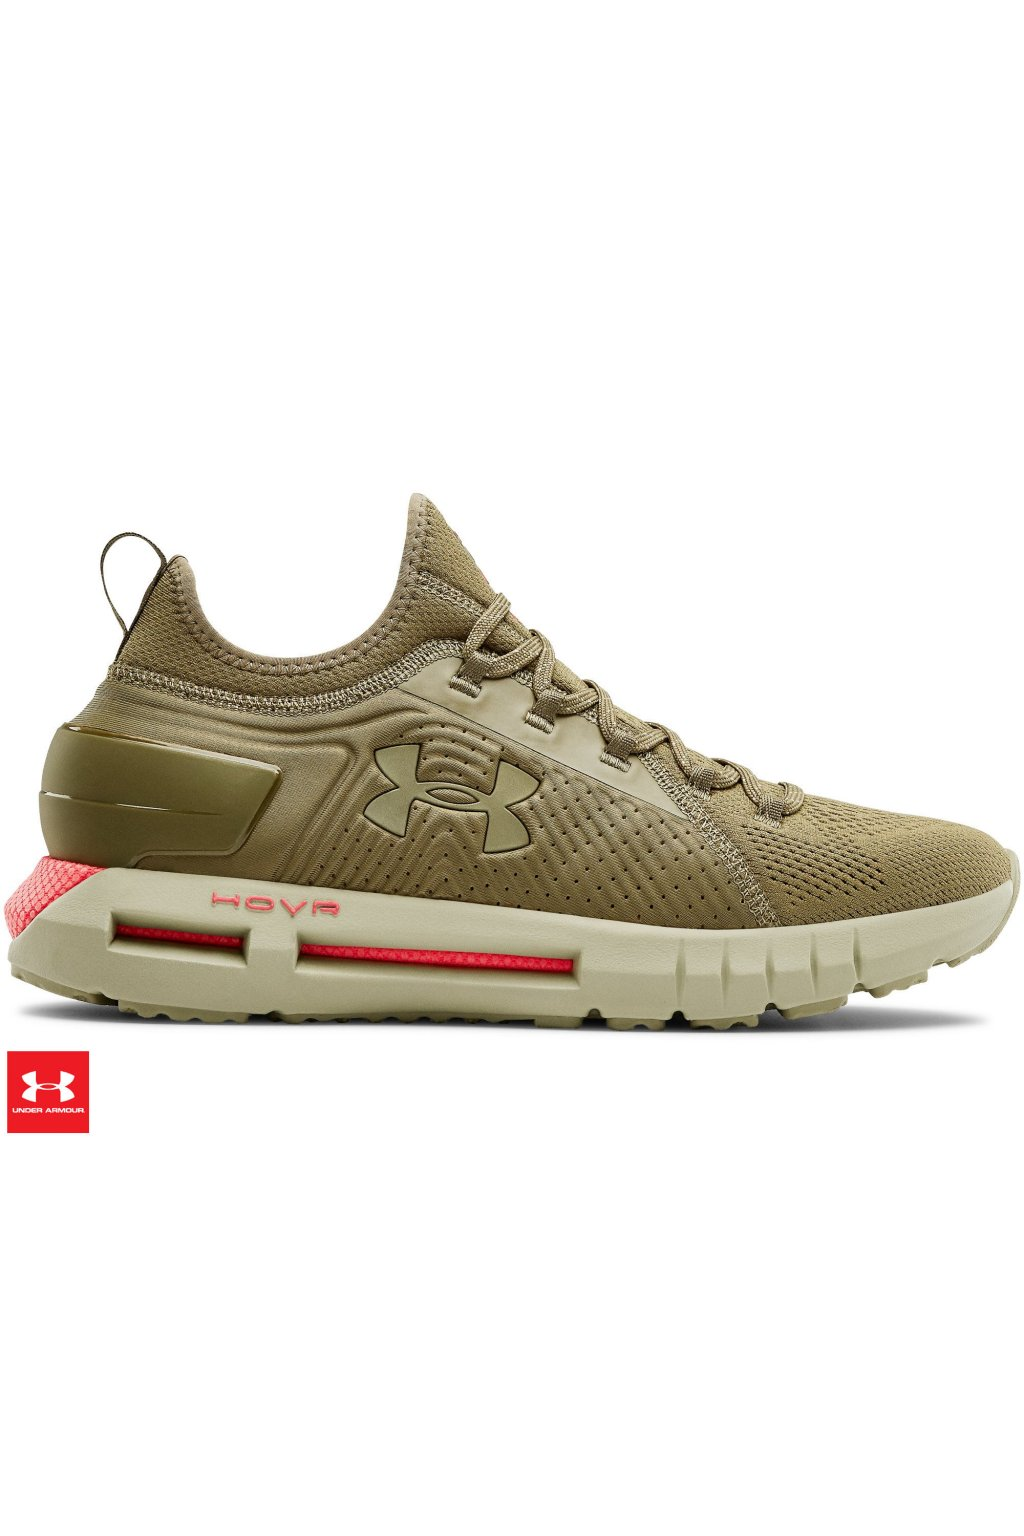 3021587 panska bezecka obuv under armour hovr phantom